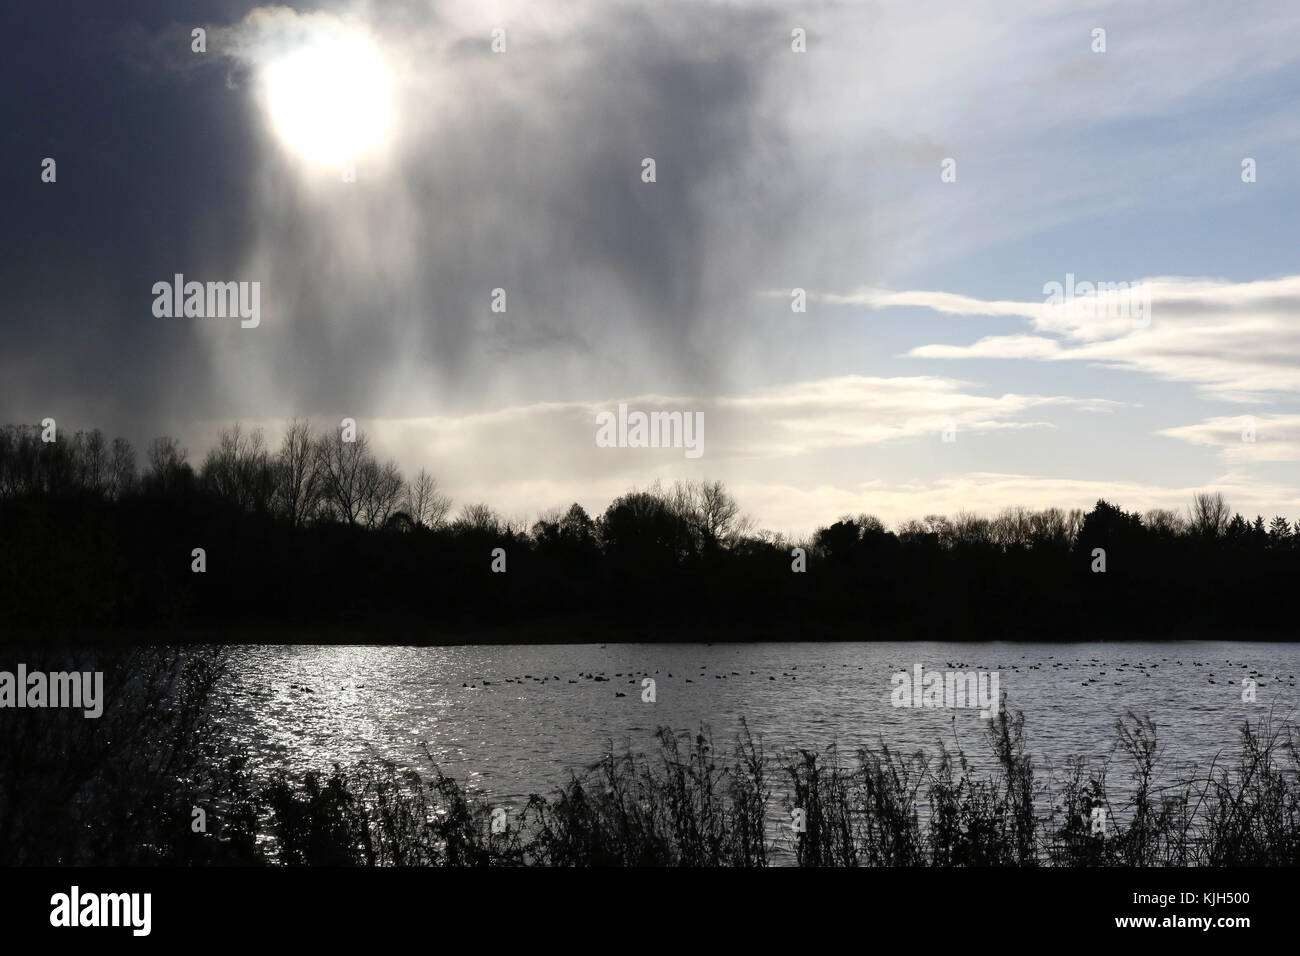 Lough Neagh Northern Ireland UK. 24 November 2017. UK weather - heavy overnight frost gave way to cold winds and - Stock Image